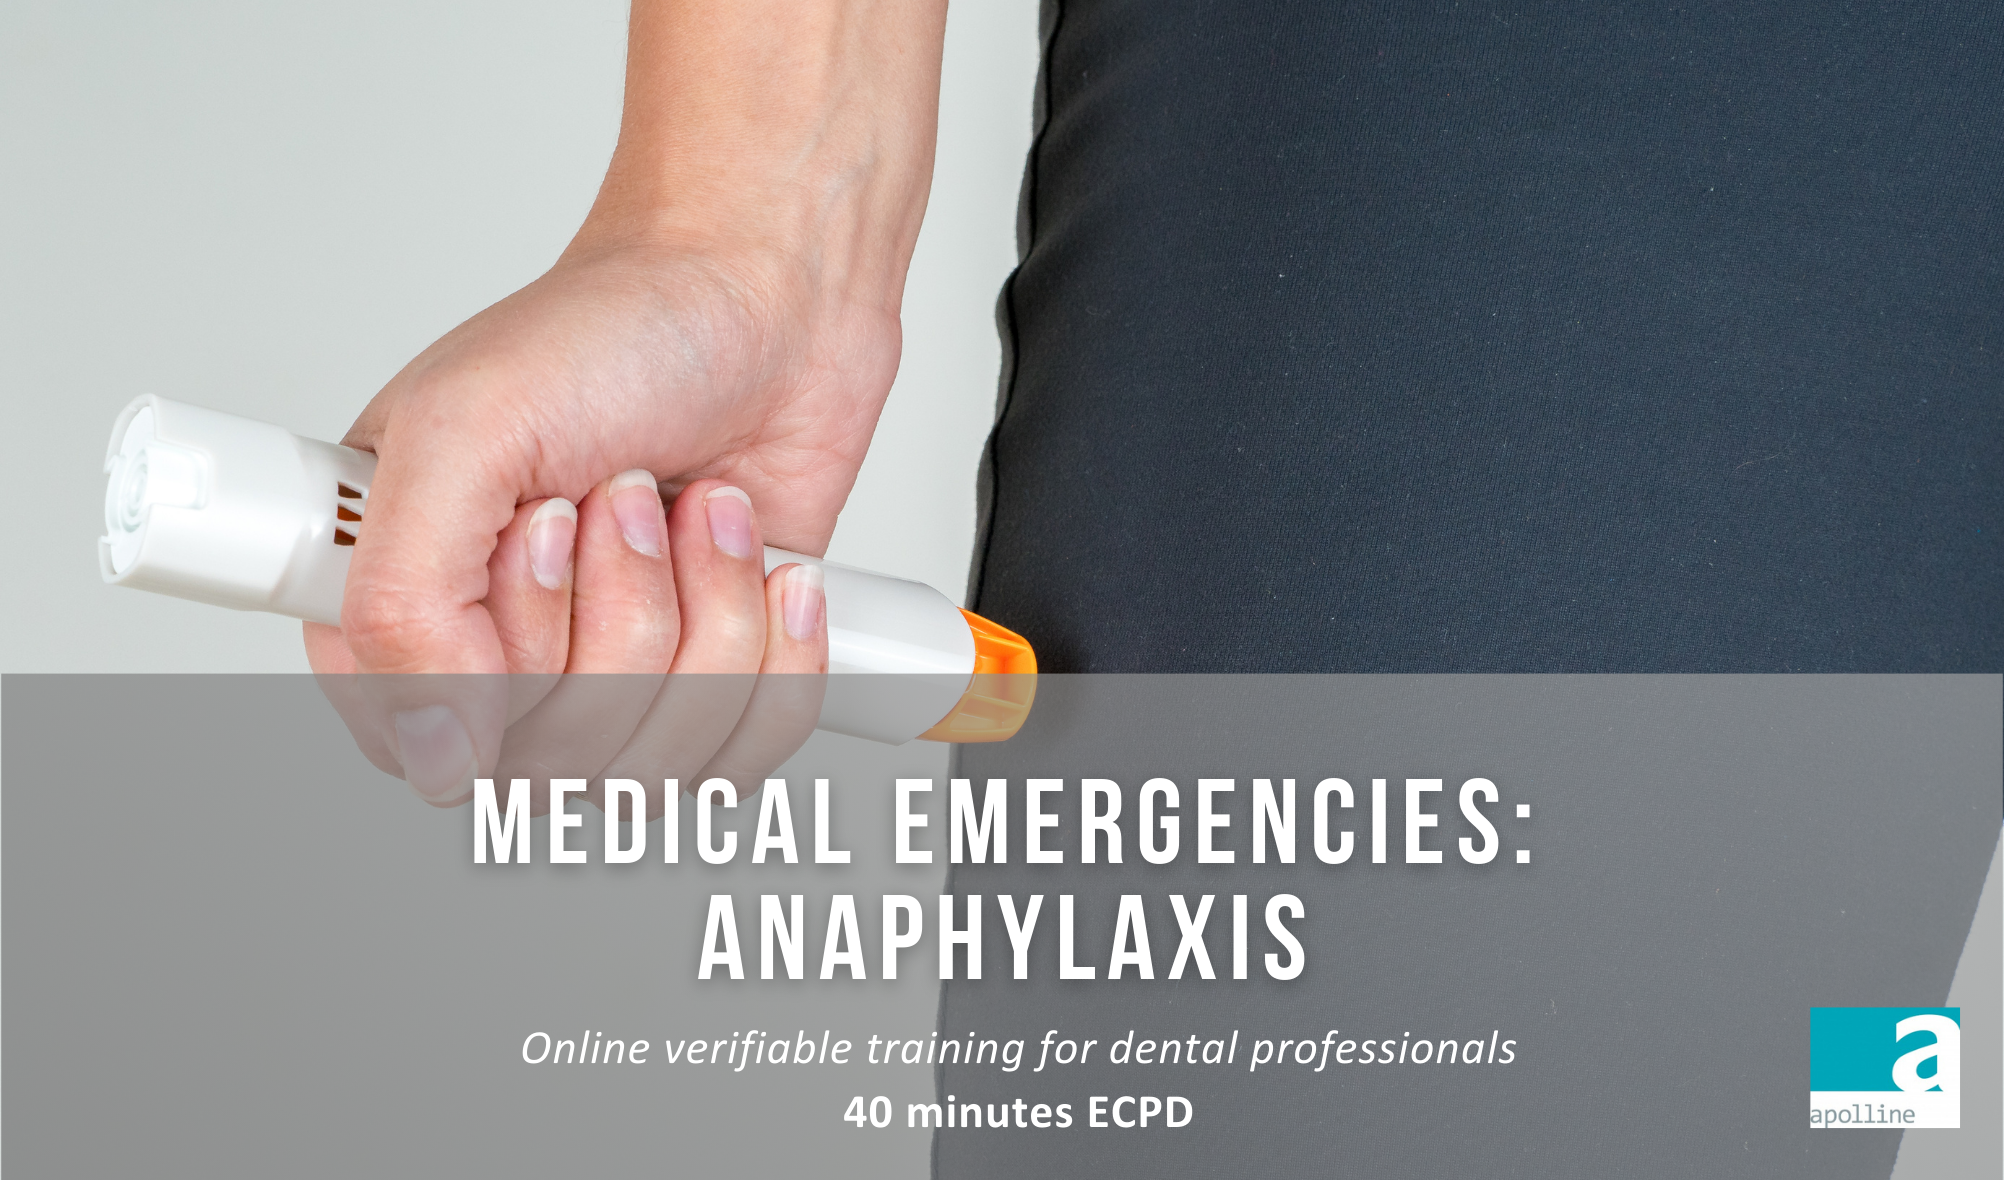 Anaphylaxis online course from Apolline Training for dental professionals